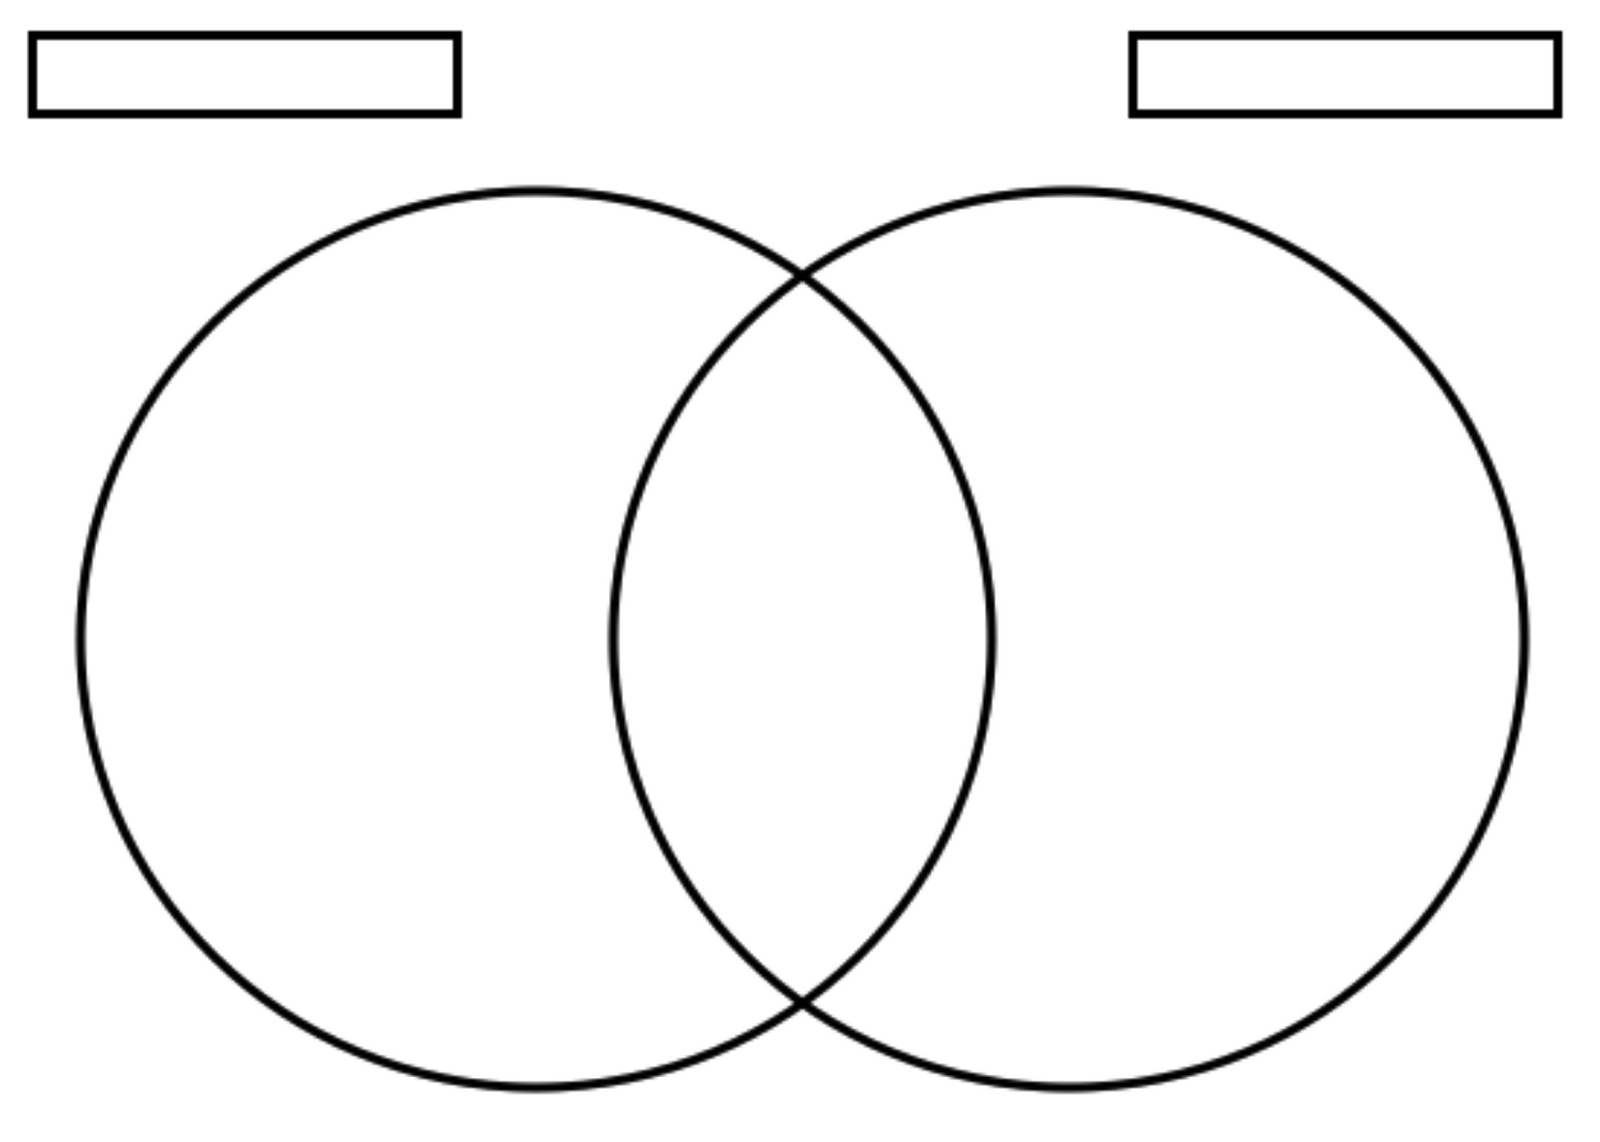 photograph regarding Printable Venn Diagrams With Lines known as VENN DIAGRAM - Unmasa Dalha